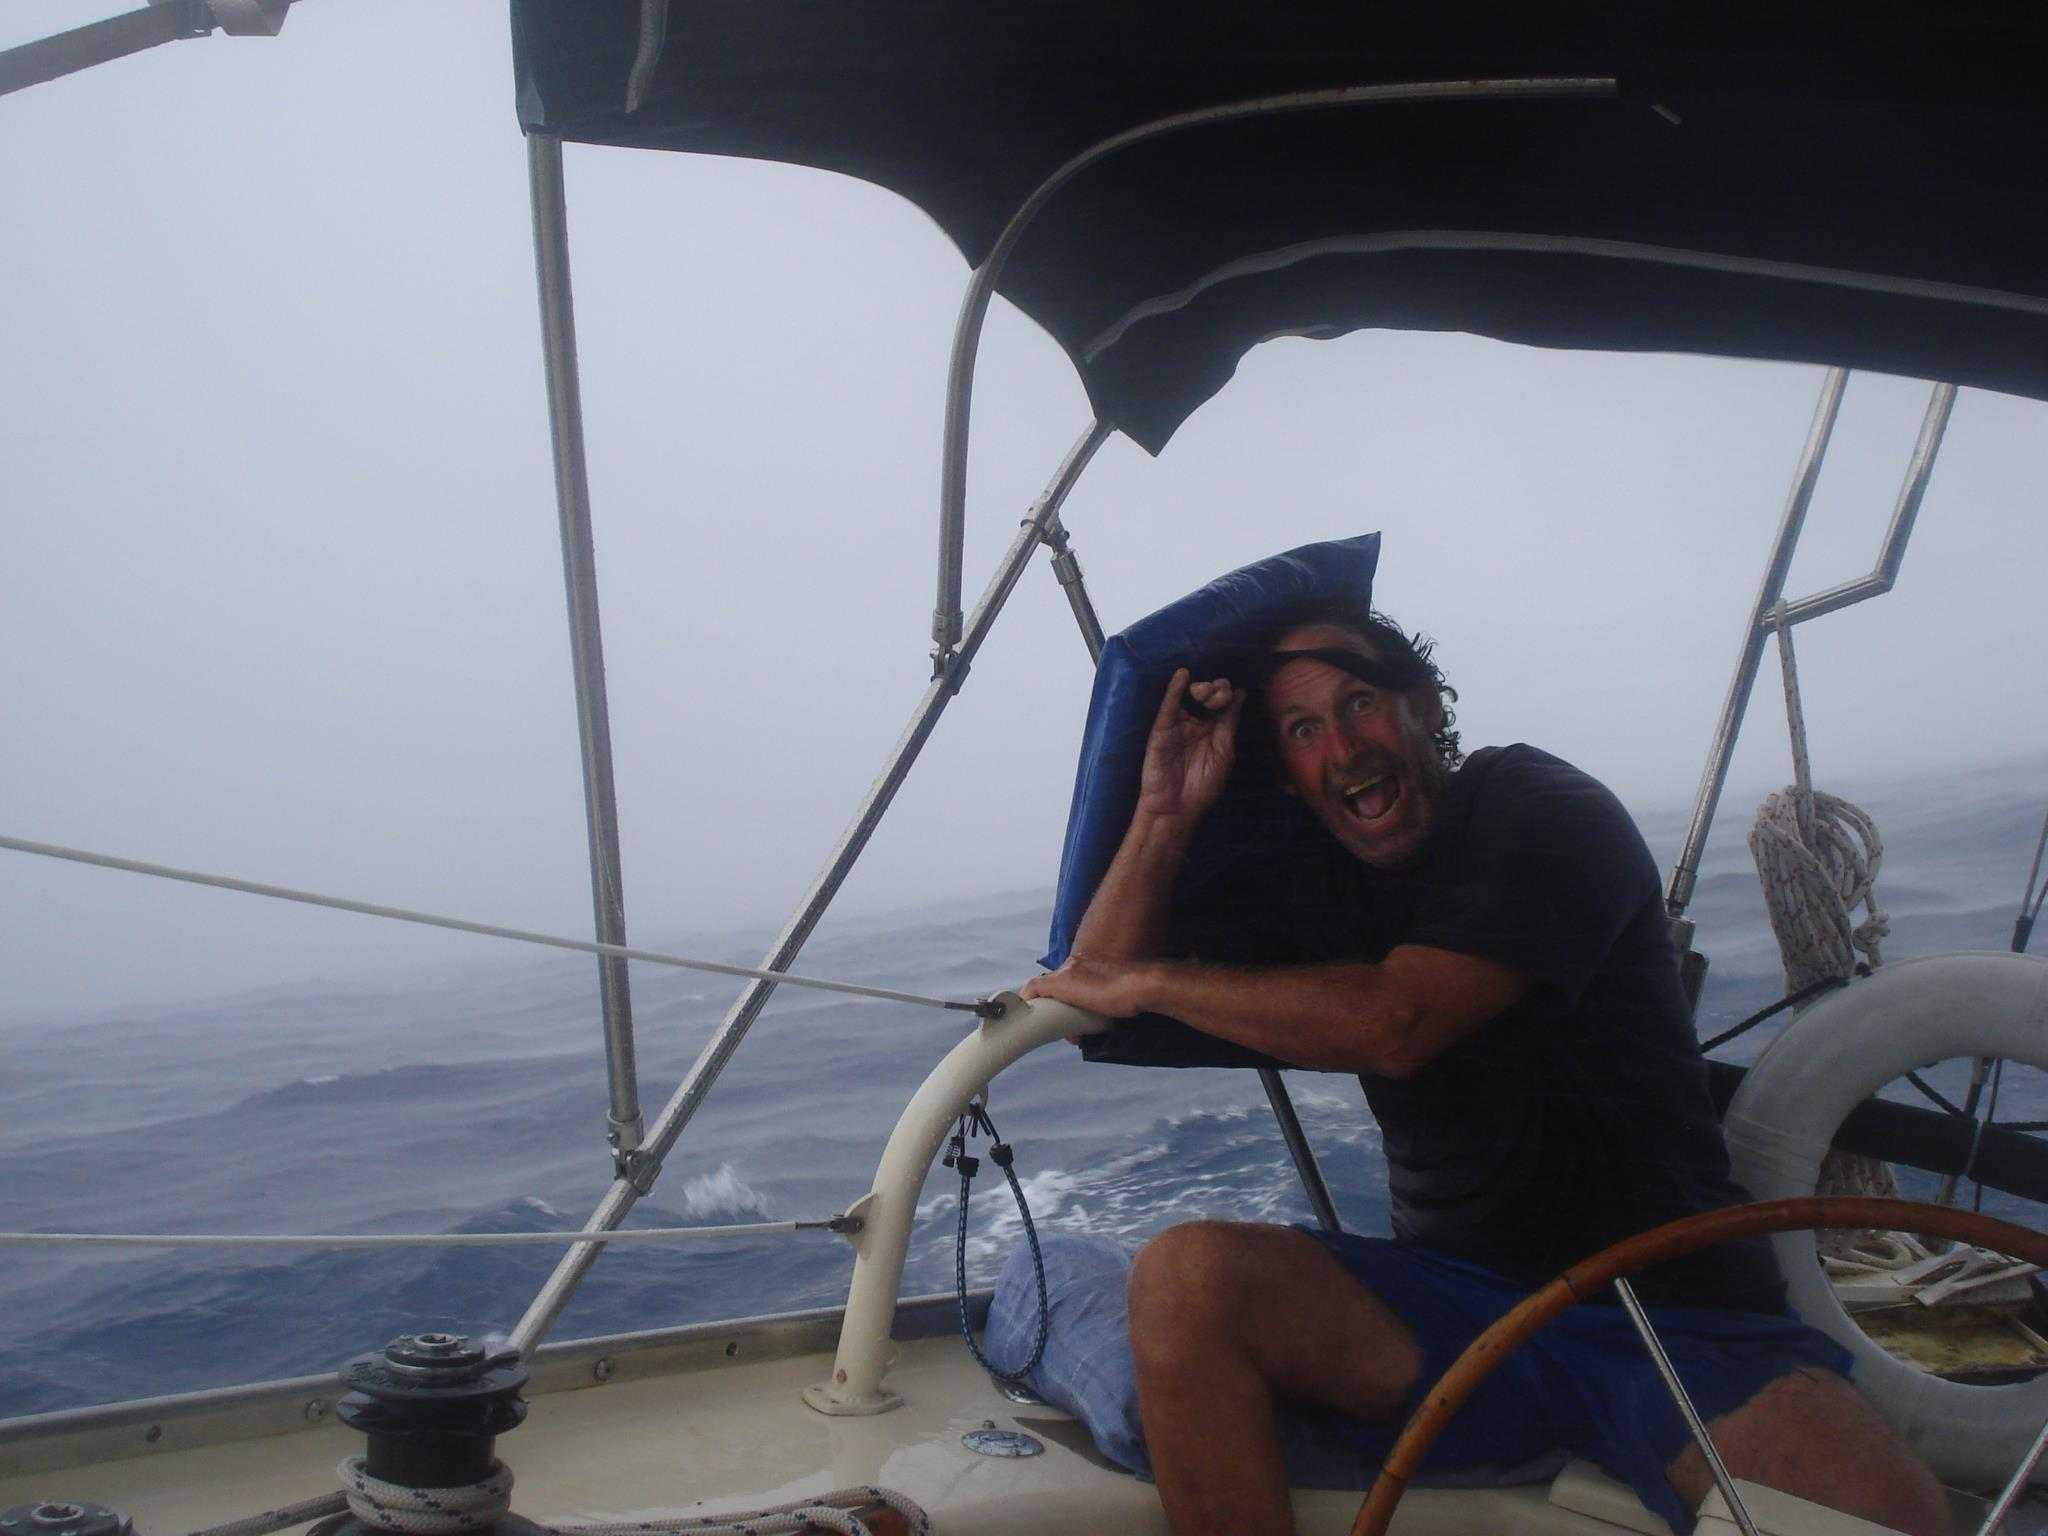 Krieger pictured during a storm on one of his sailing adventures. (Courtesy Darragh McCarthy)